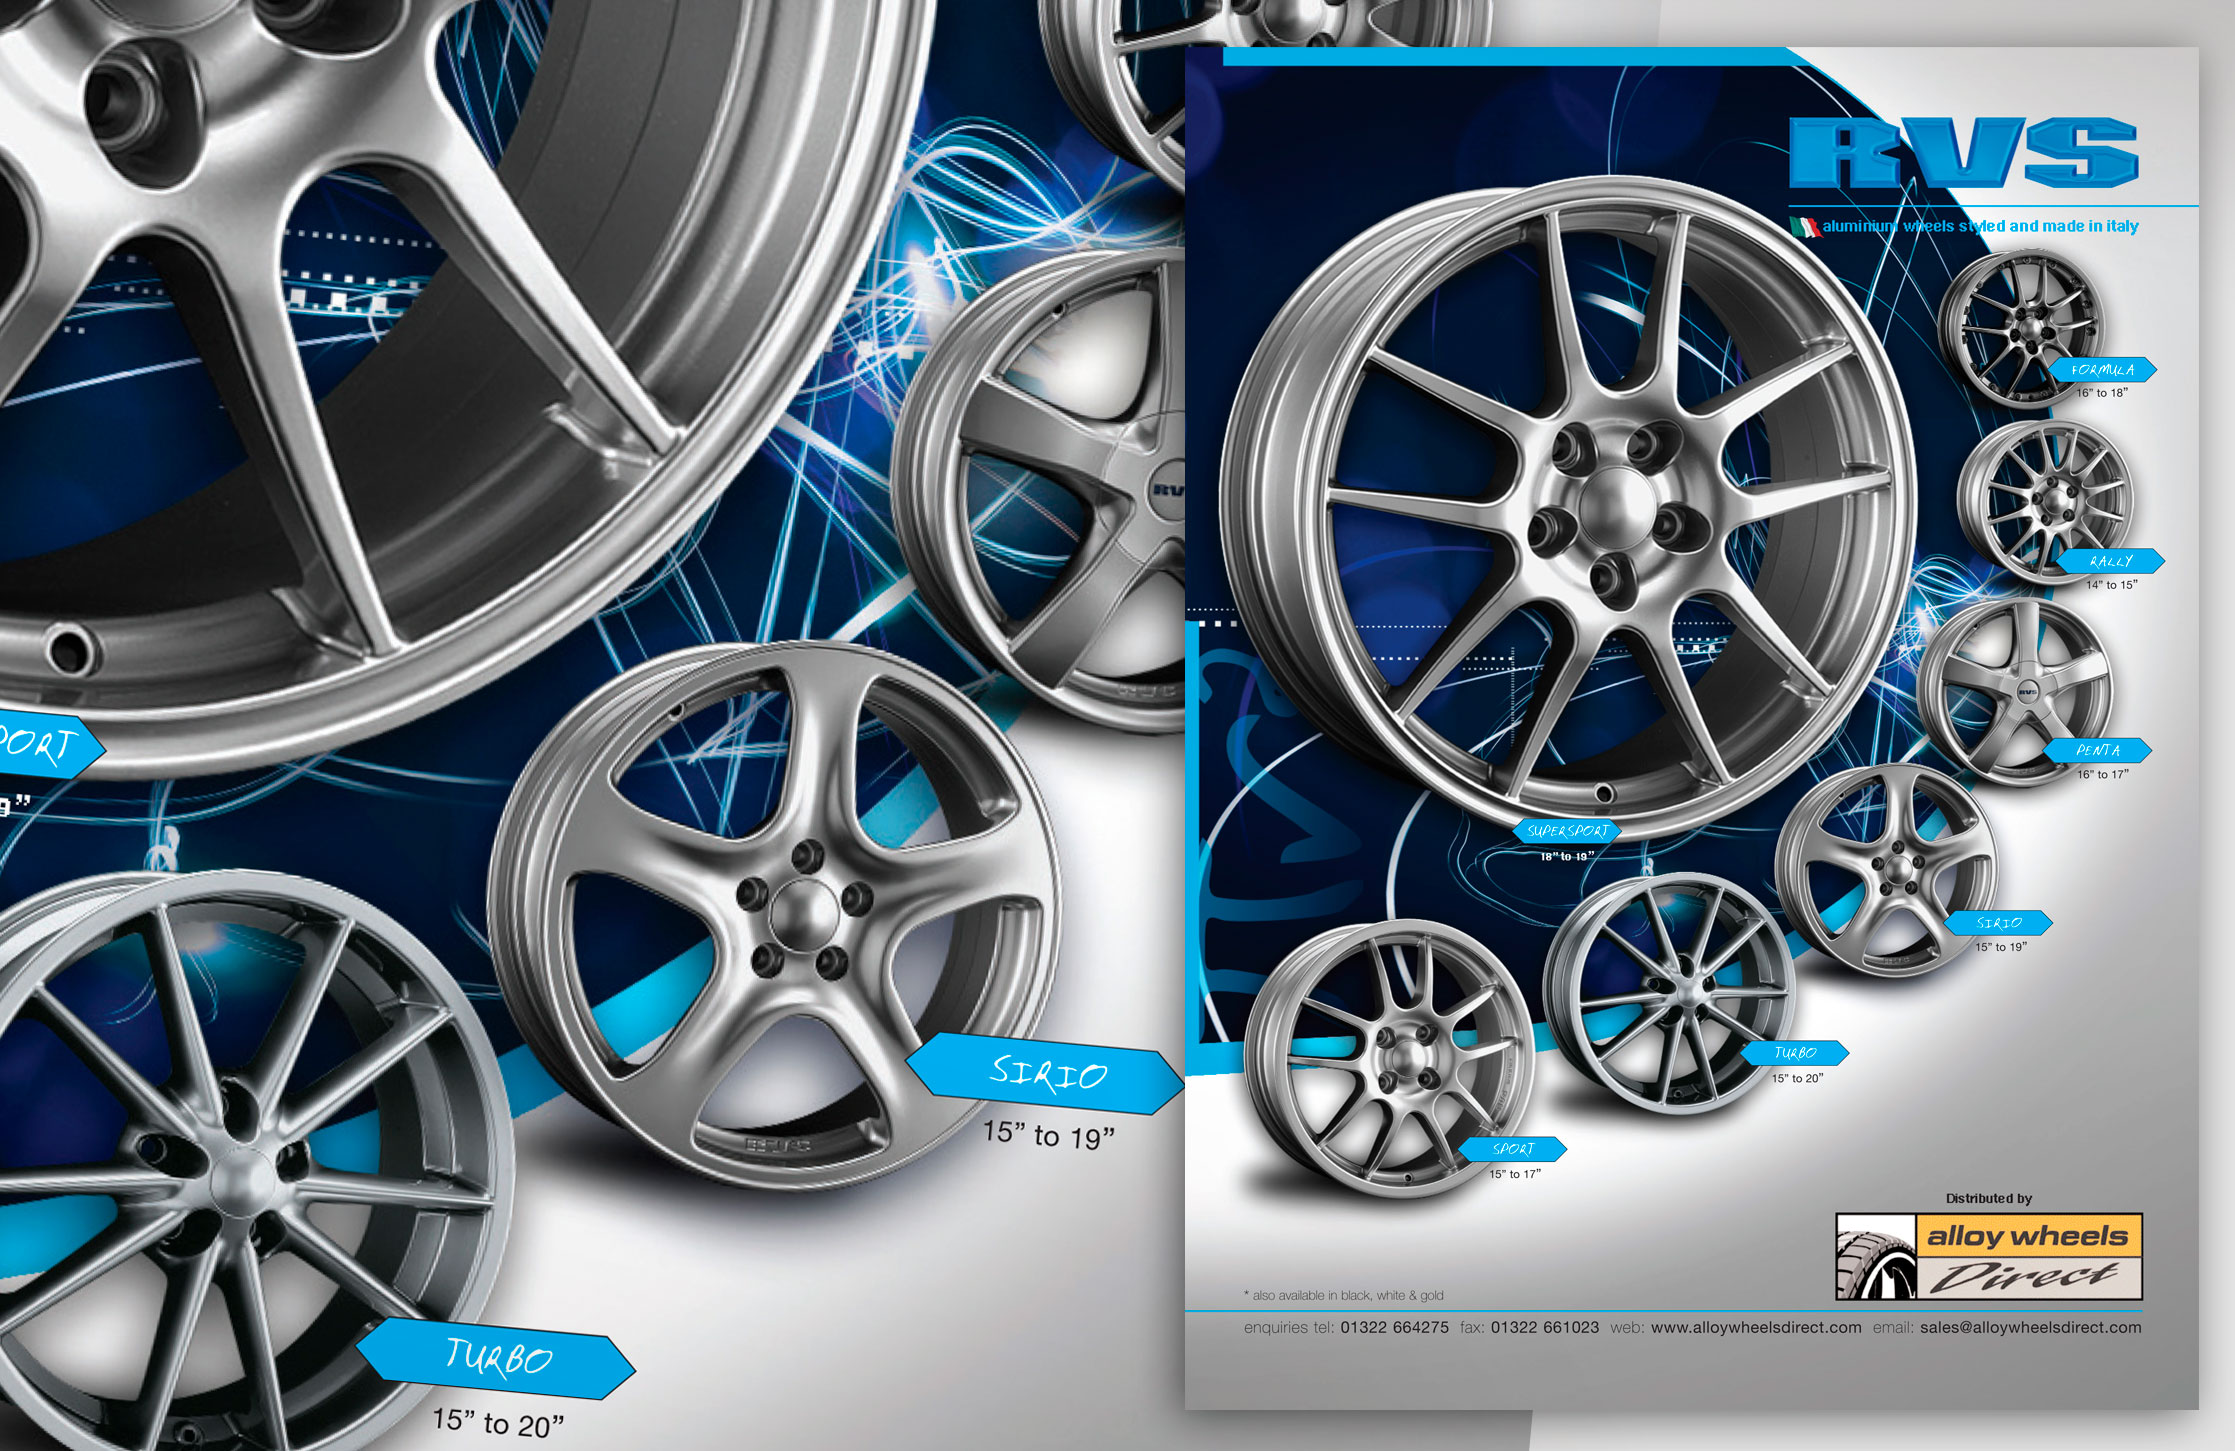 RVS Alloy Wheels Advert